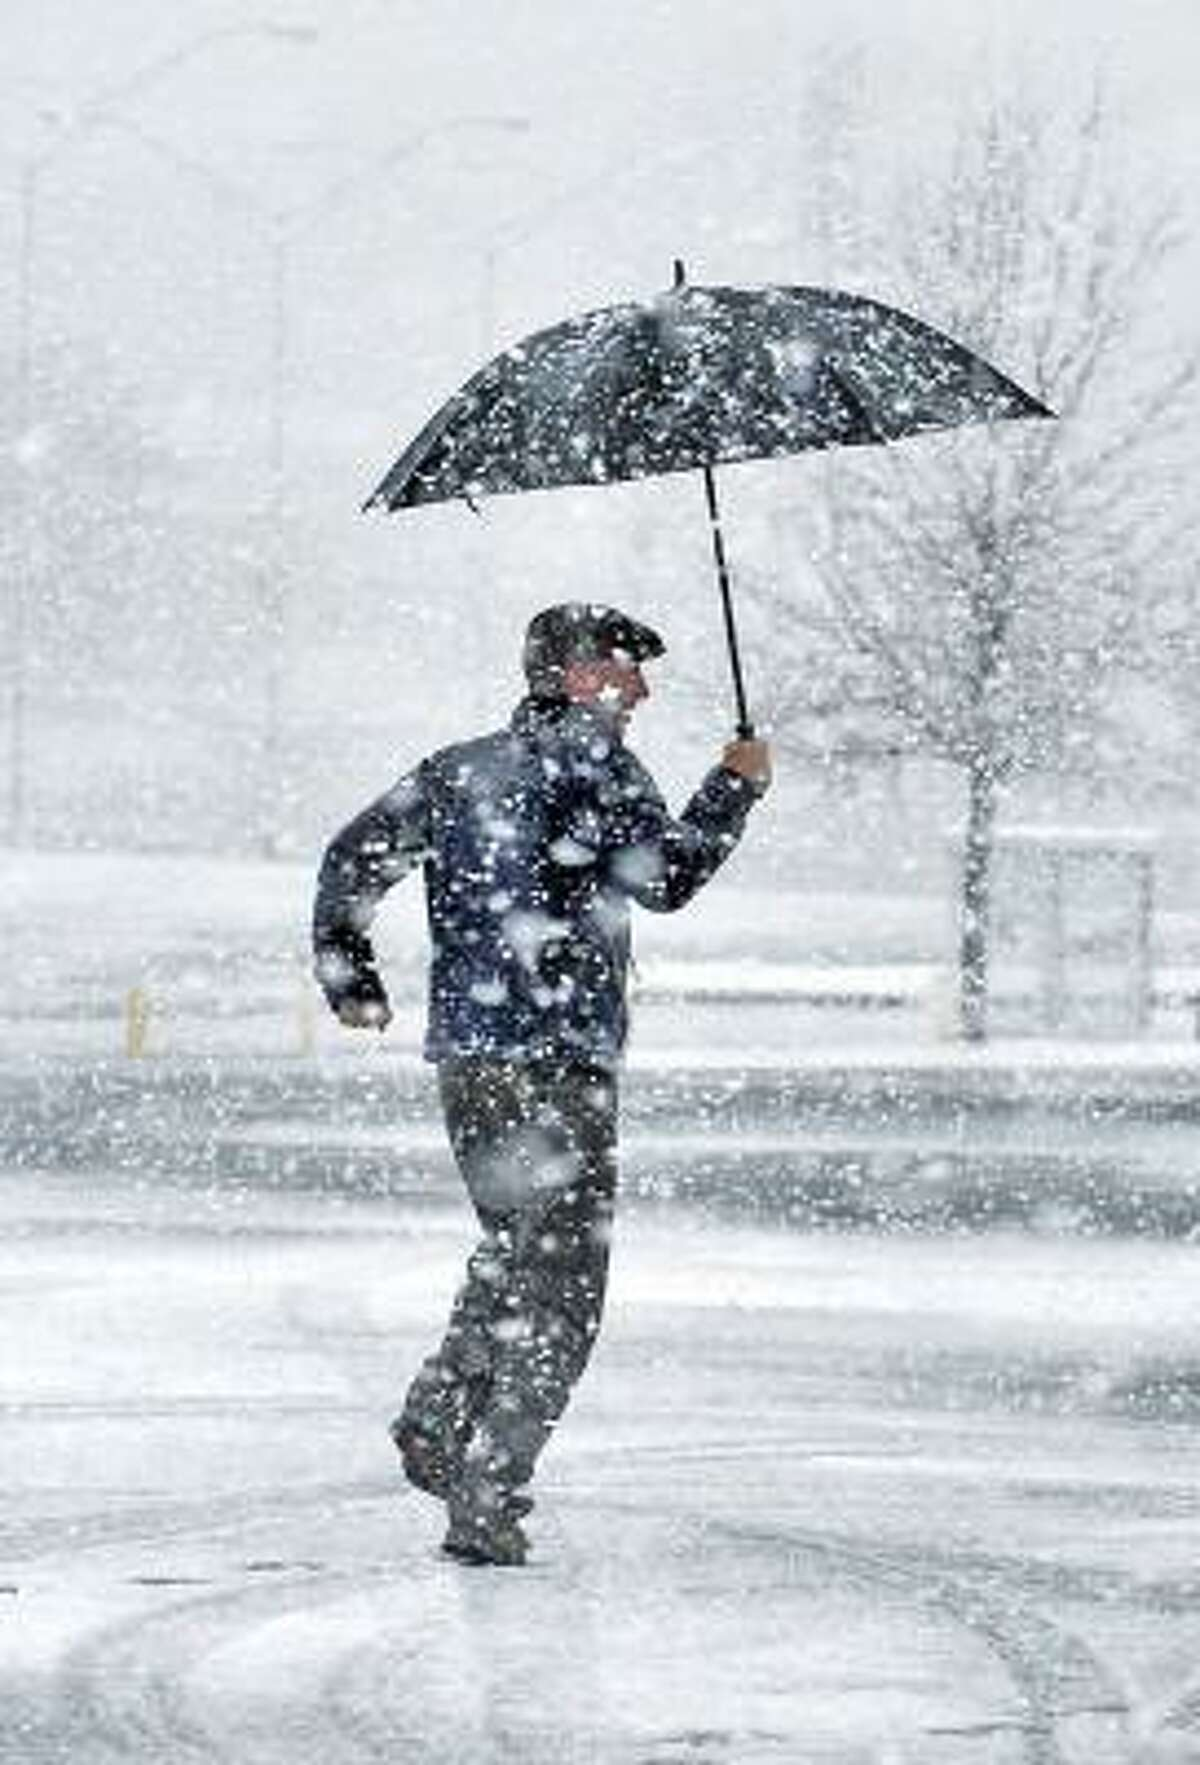 Todd Warren, visiting from Buffalo, N.Y., walks through the snow that hit Atlanta to his car after learning the 25th Annual Hunger Walk/Run event had been canceled because of the weather on Sunday.